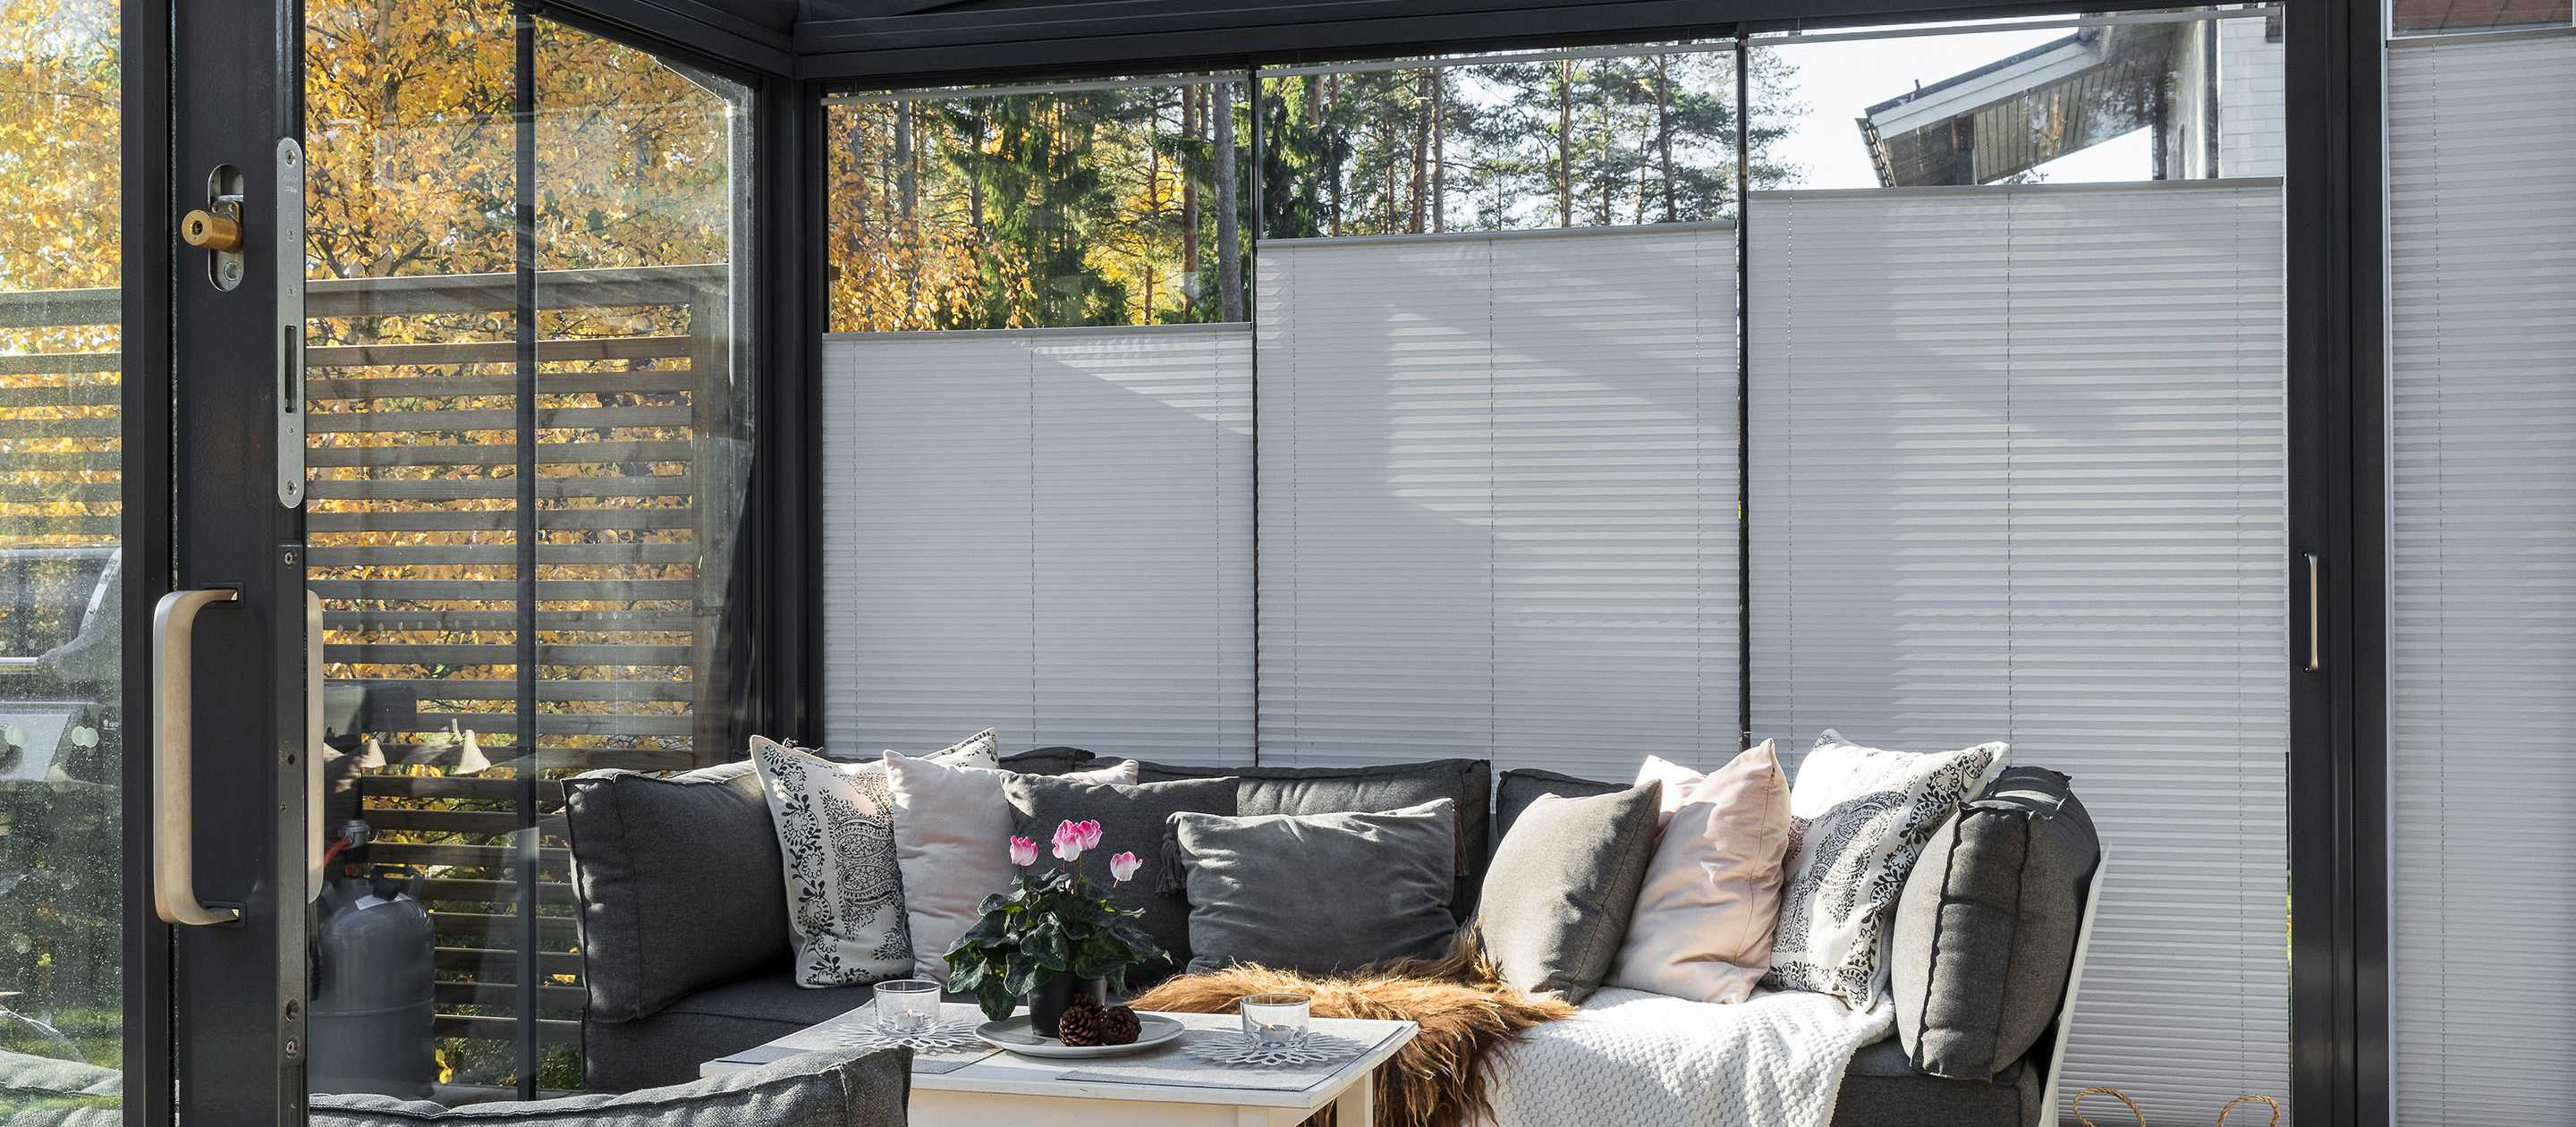 shades, window shades and screens, balcony blinds, sunroom shades, sunroom curtains, quality shades, window blinds, sunroom blinds, curtains for sunroom